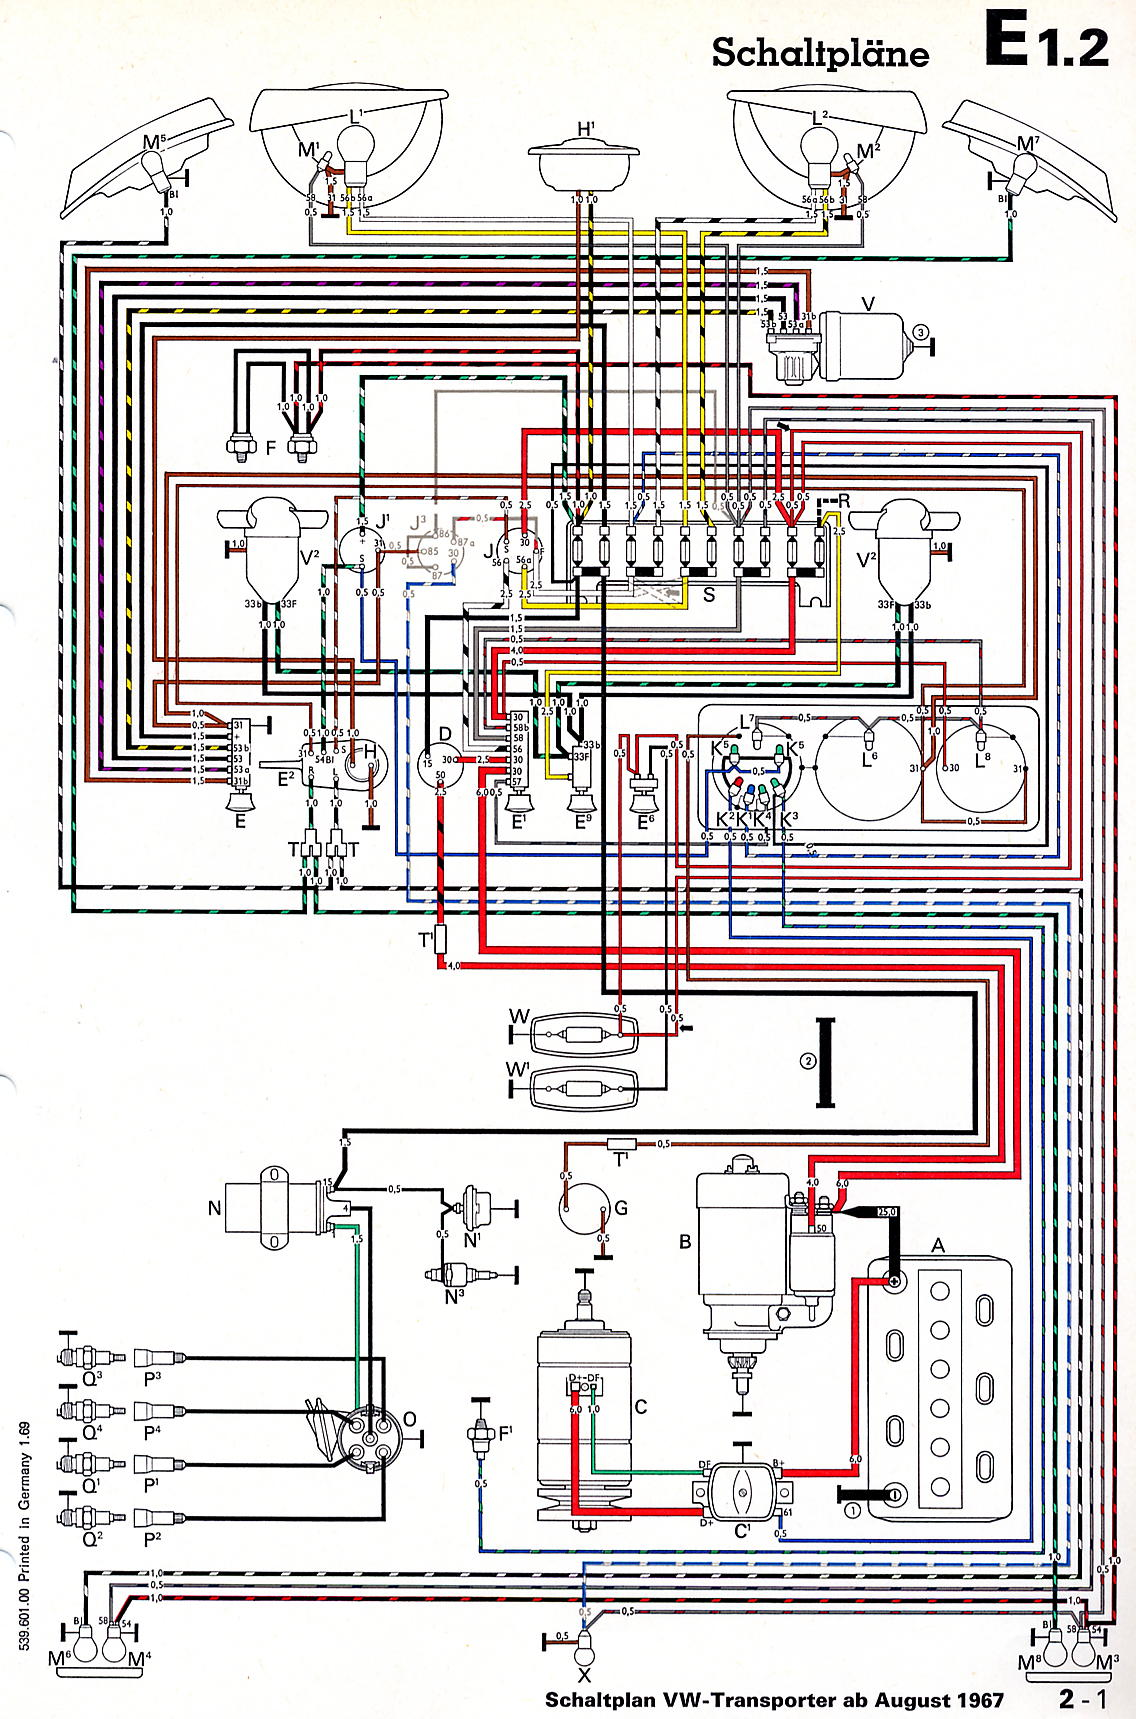 utv winch wiring diagram thesamba.com :: bay window bus - view topic - 69 ... bad boy utv electric wiring diagram